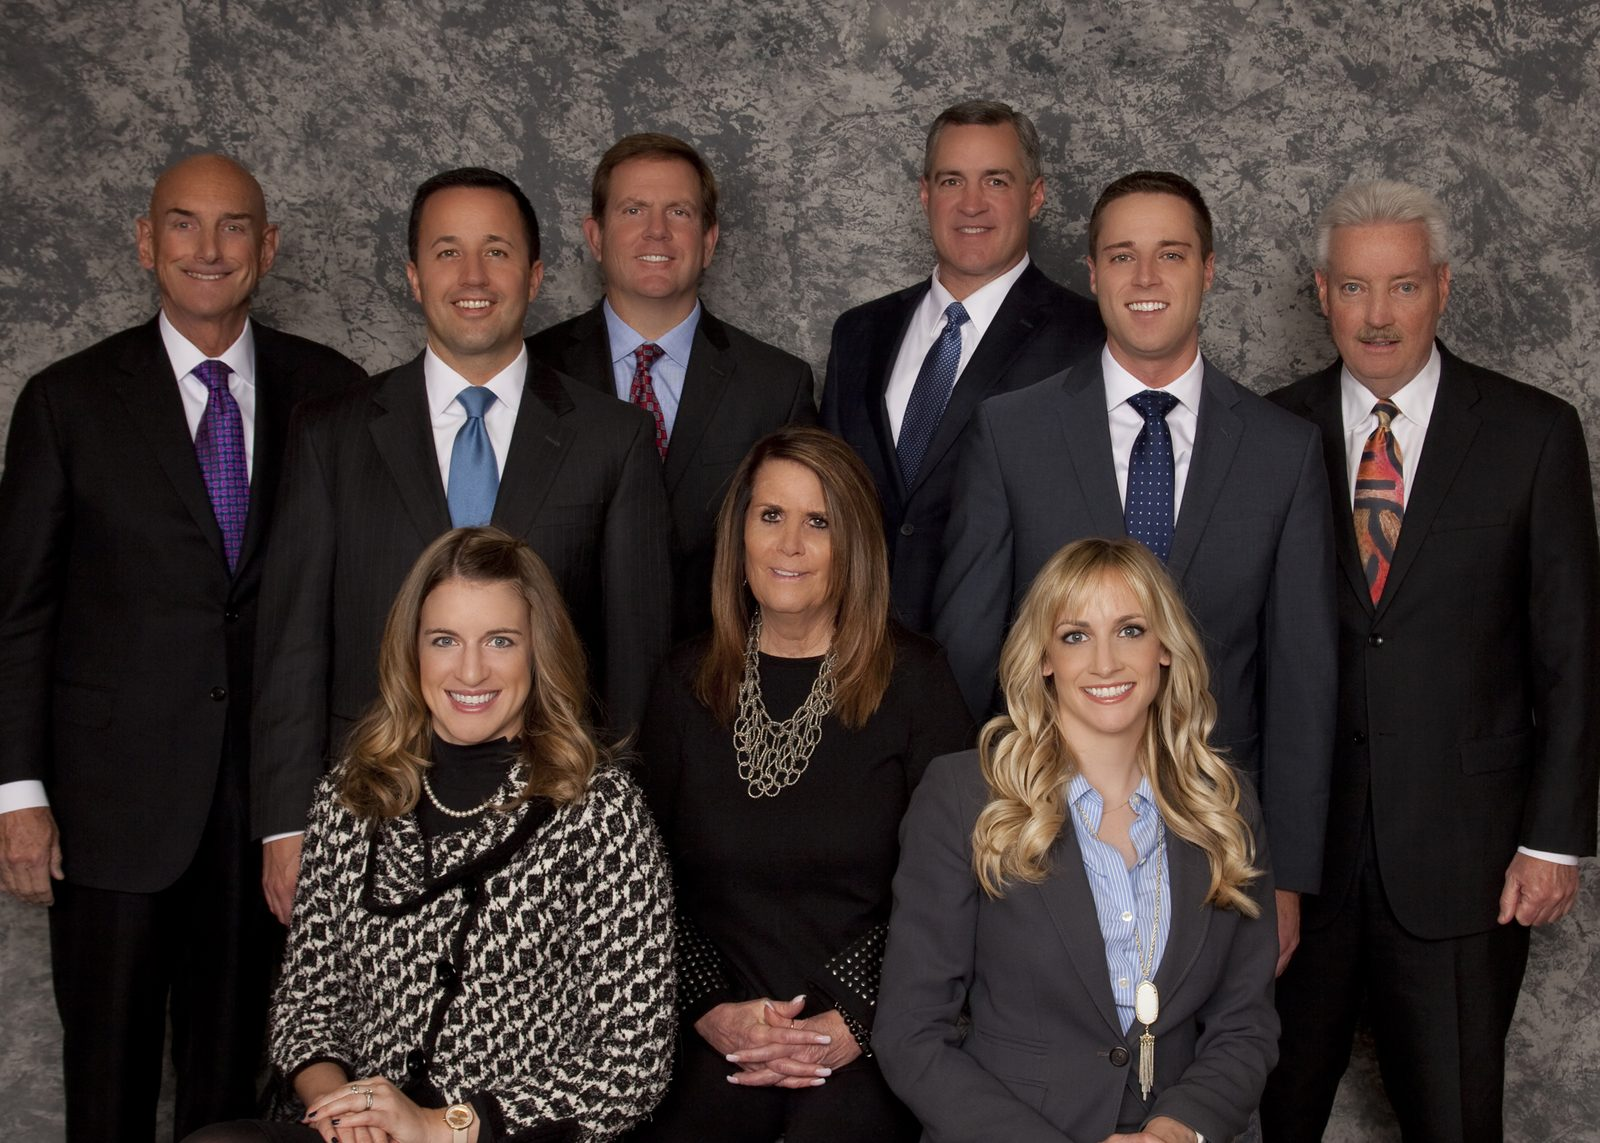 Photo of The Milestone Group - Morgan Stanley